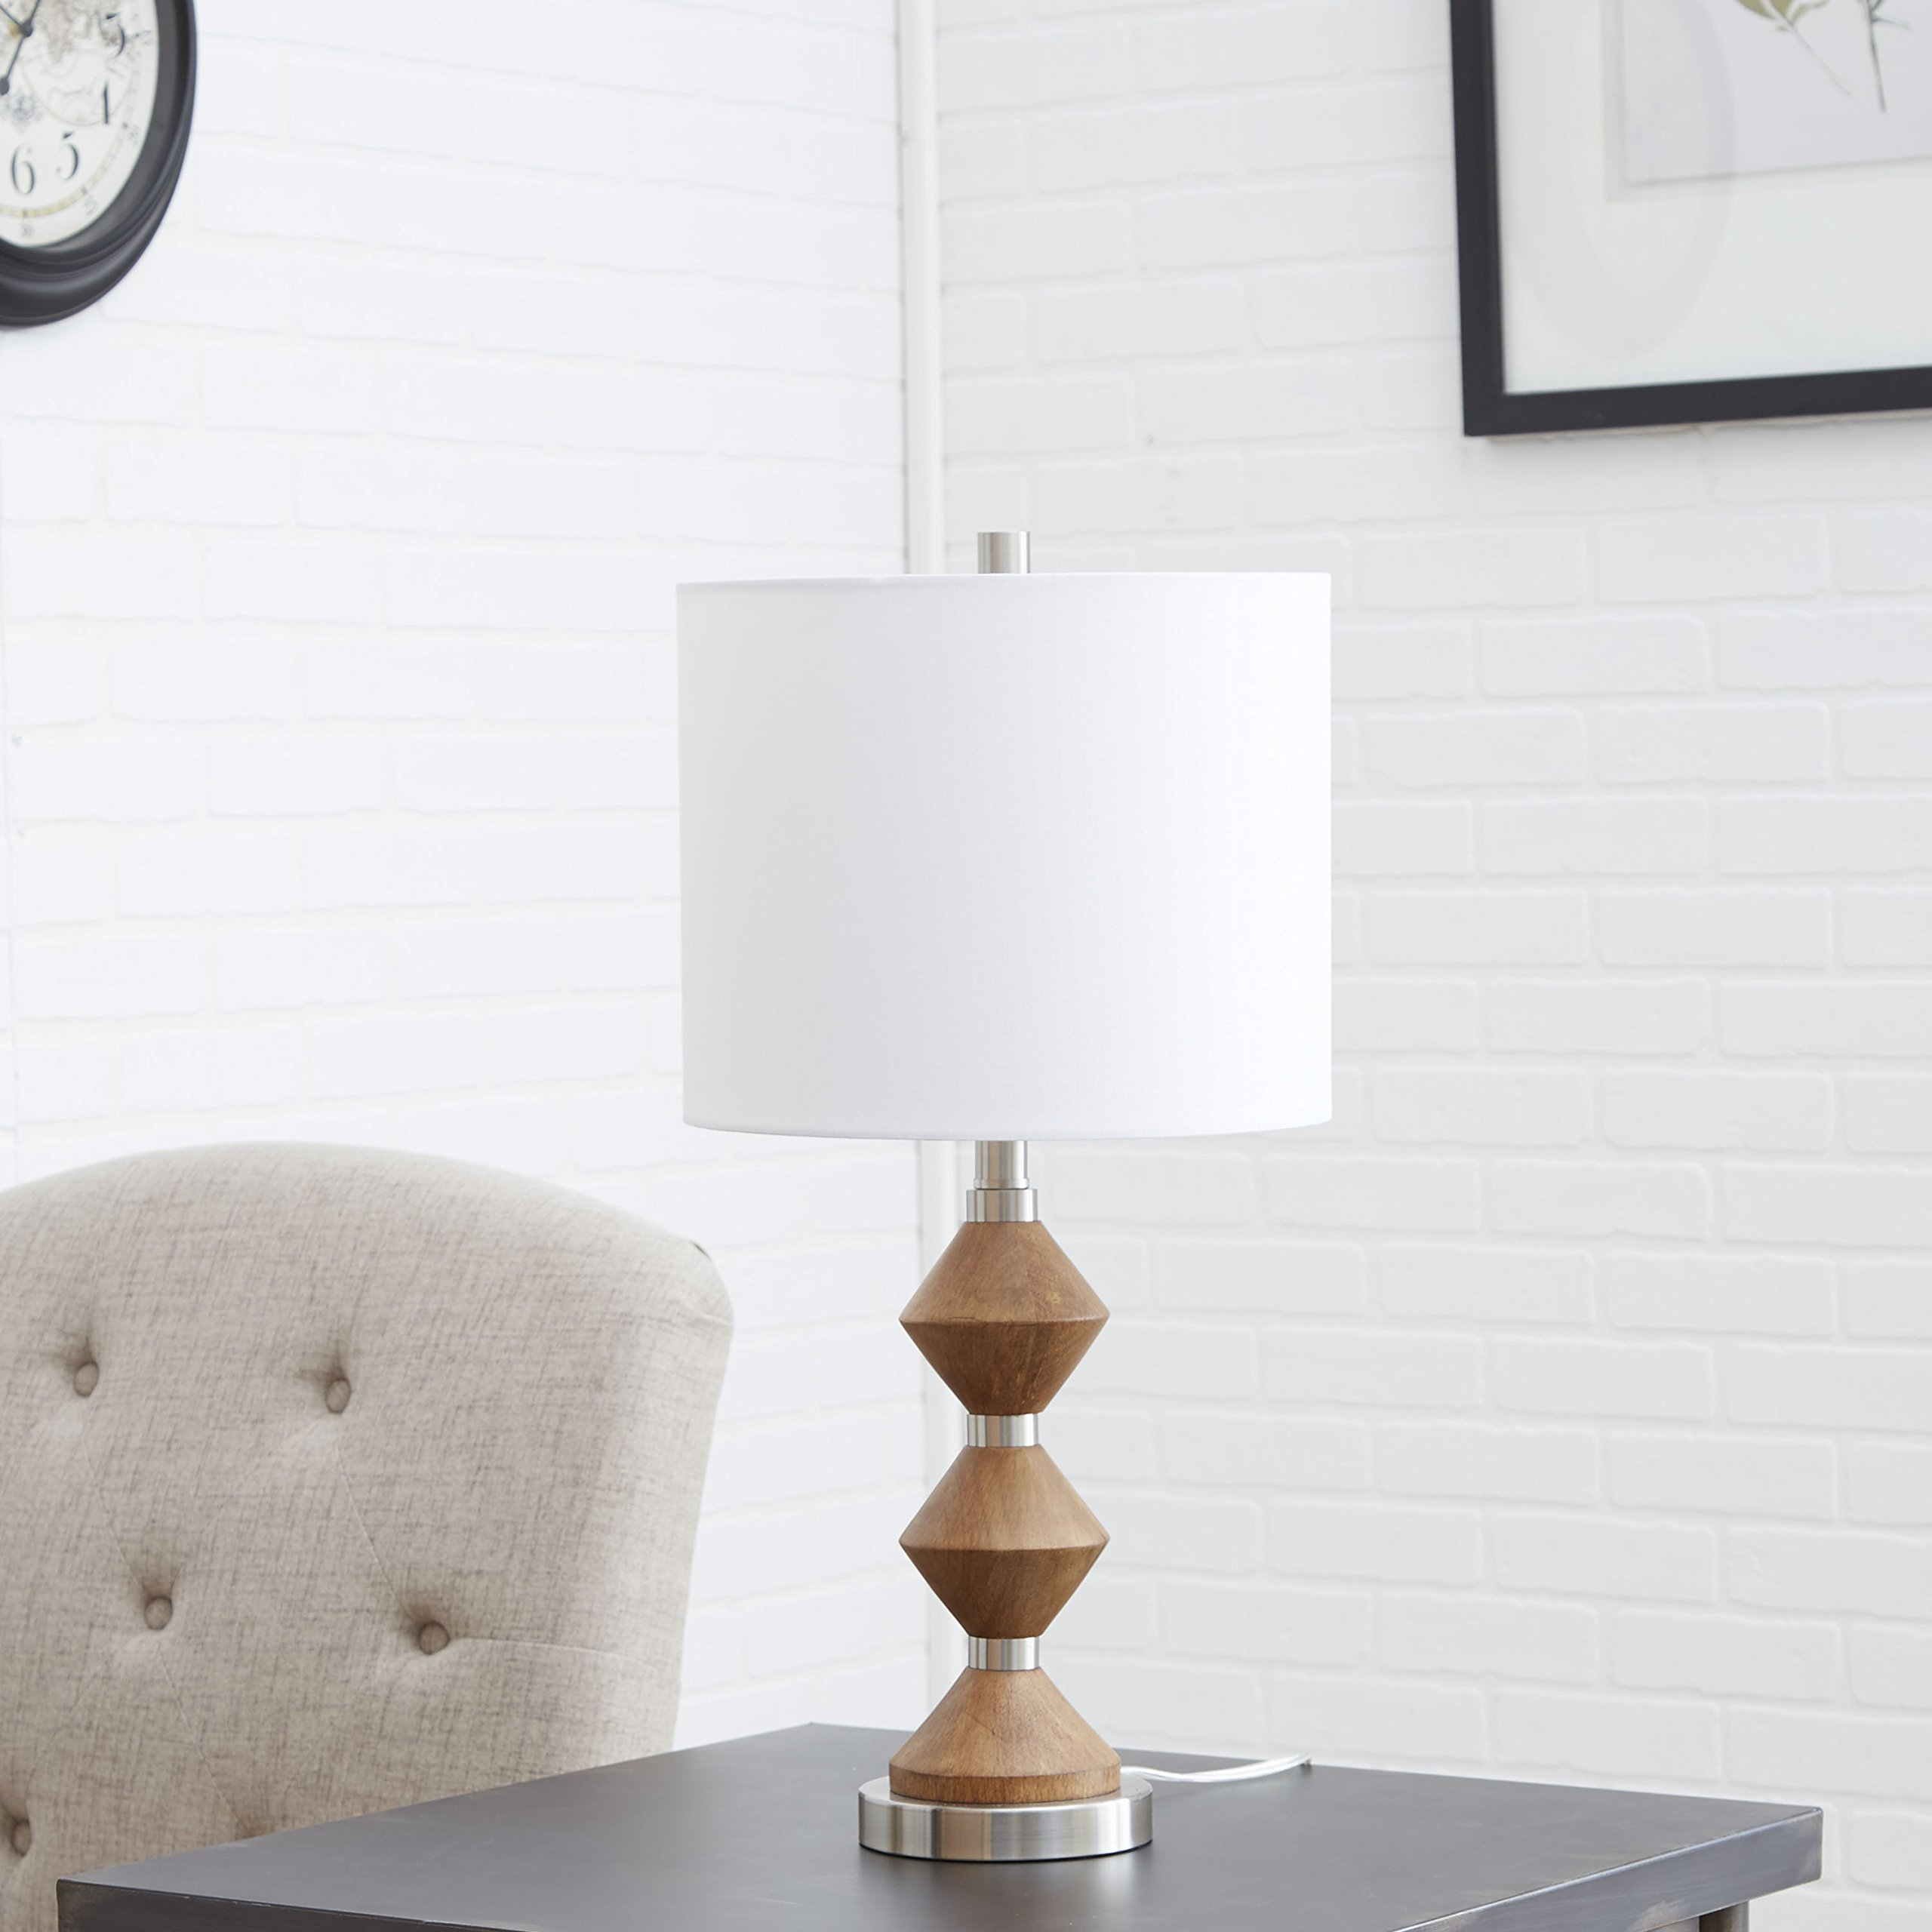 Silverwood CPLT1583 Table Lamp, 12 L x 12W x 25 H in, Natural Wood/Brushed Nickel Finish